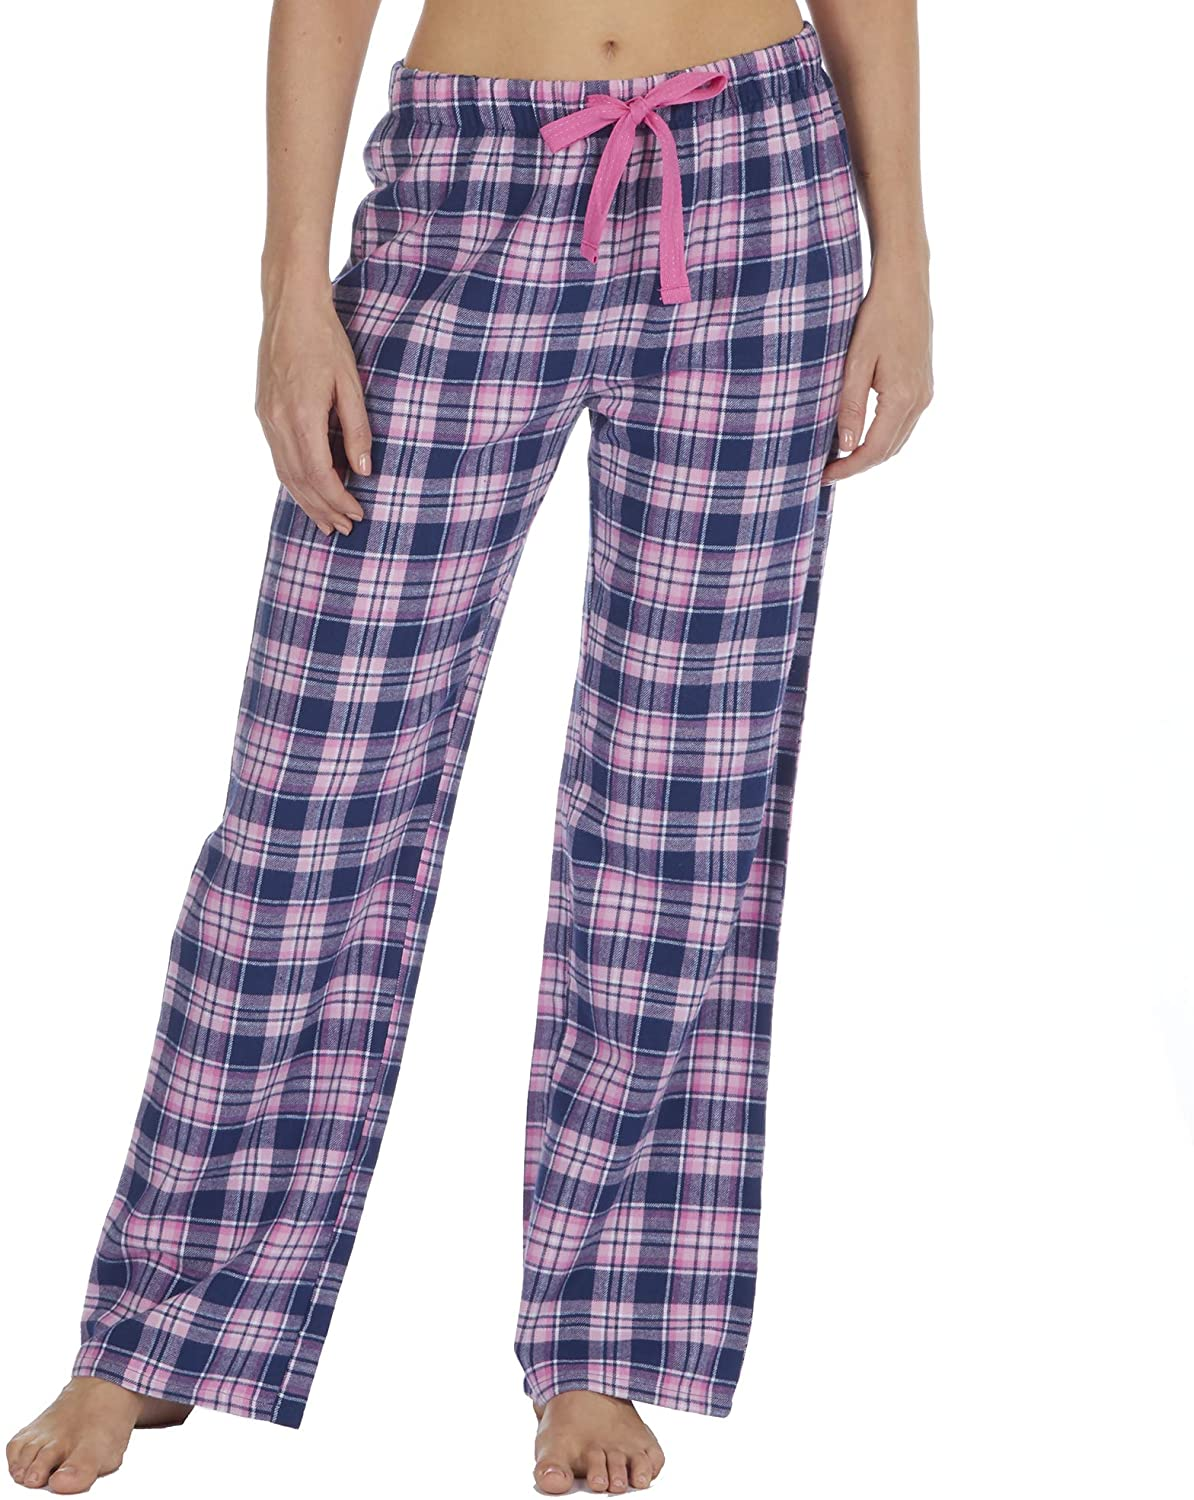 Forever Dreaming Women's 100% Cotton Pajama/Lounge Pants with Pockets